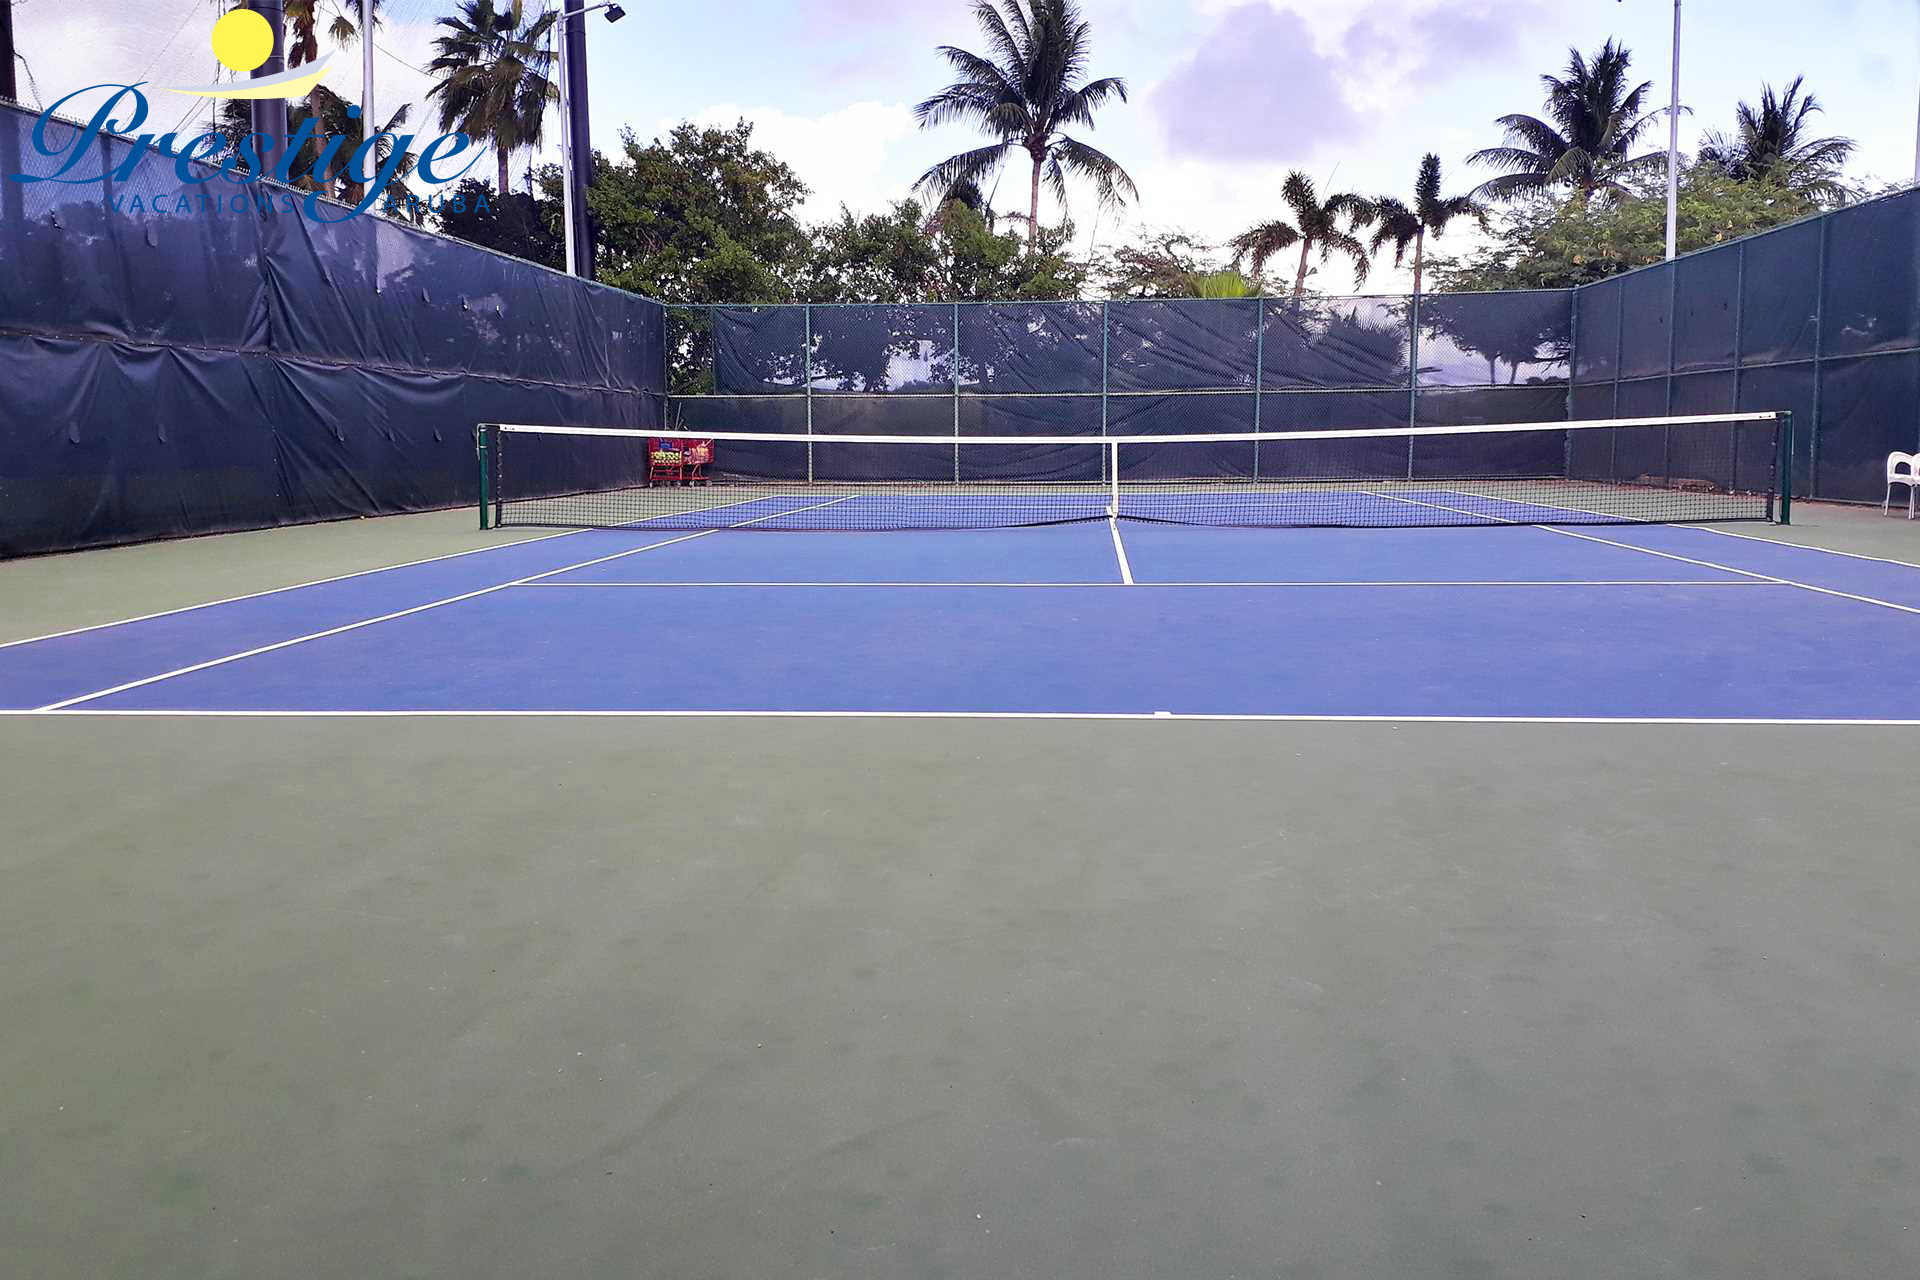 Tennis clinics and lessons provided by tennis professionals from Aruba Tennis